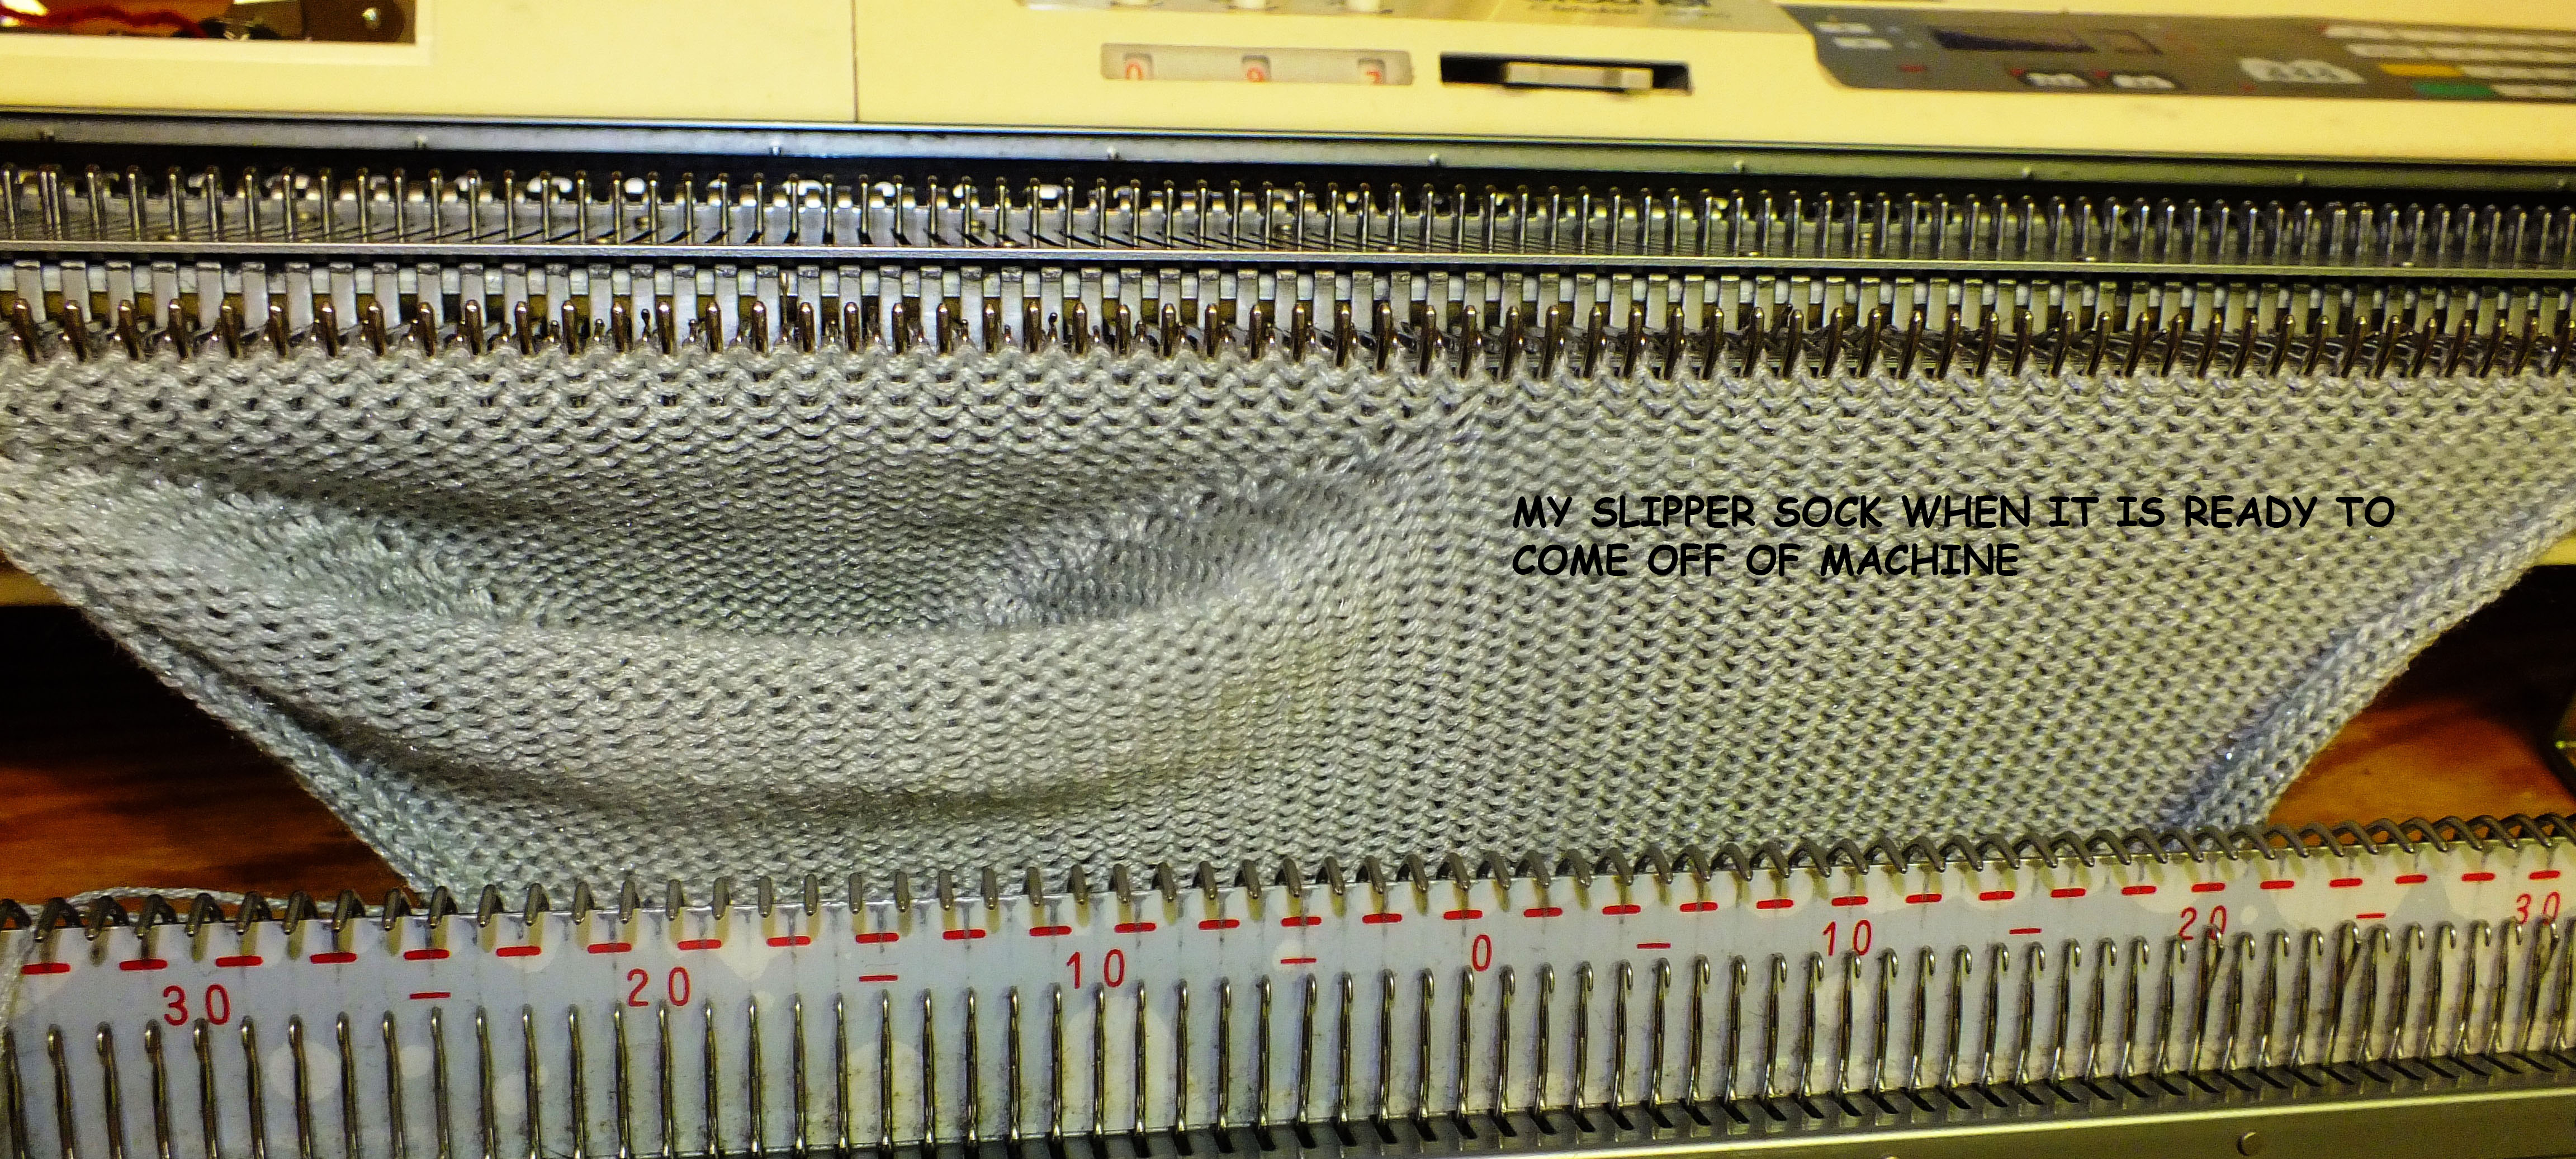 how to build a knitting machine